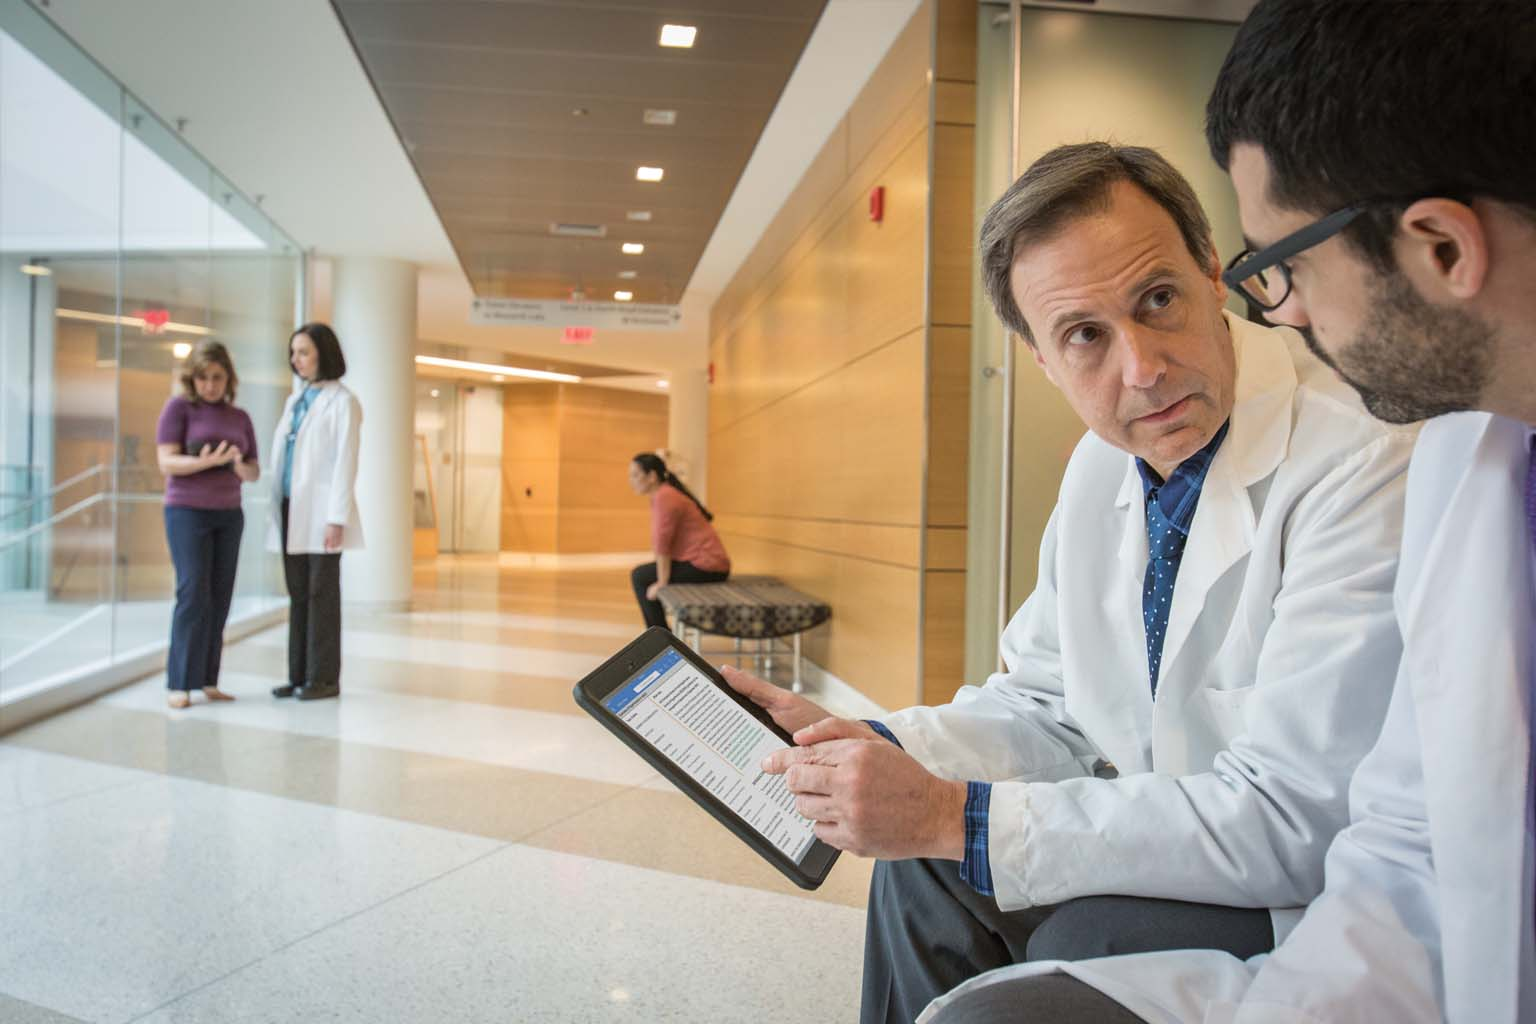 two doctors seated with tablet in hospital hallway